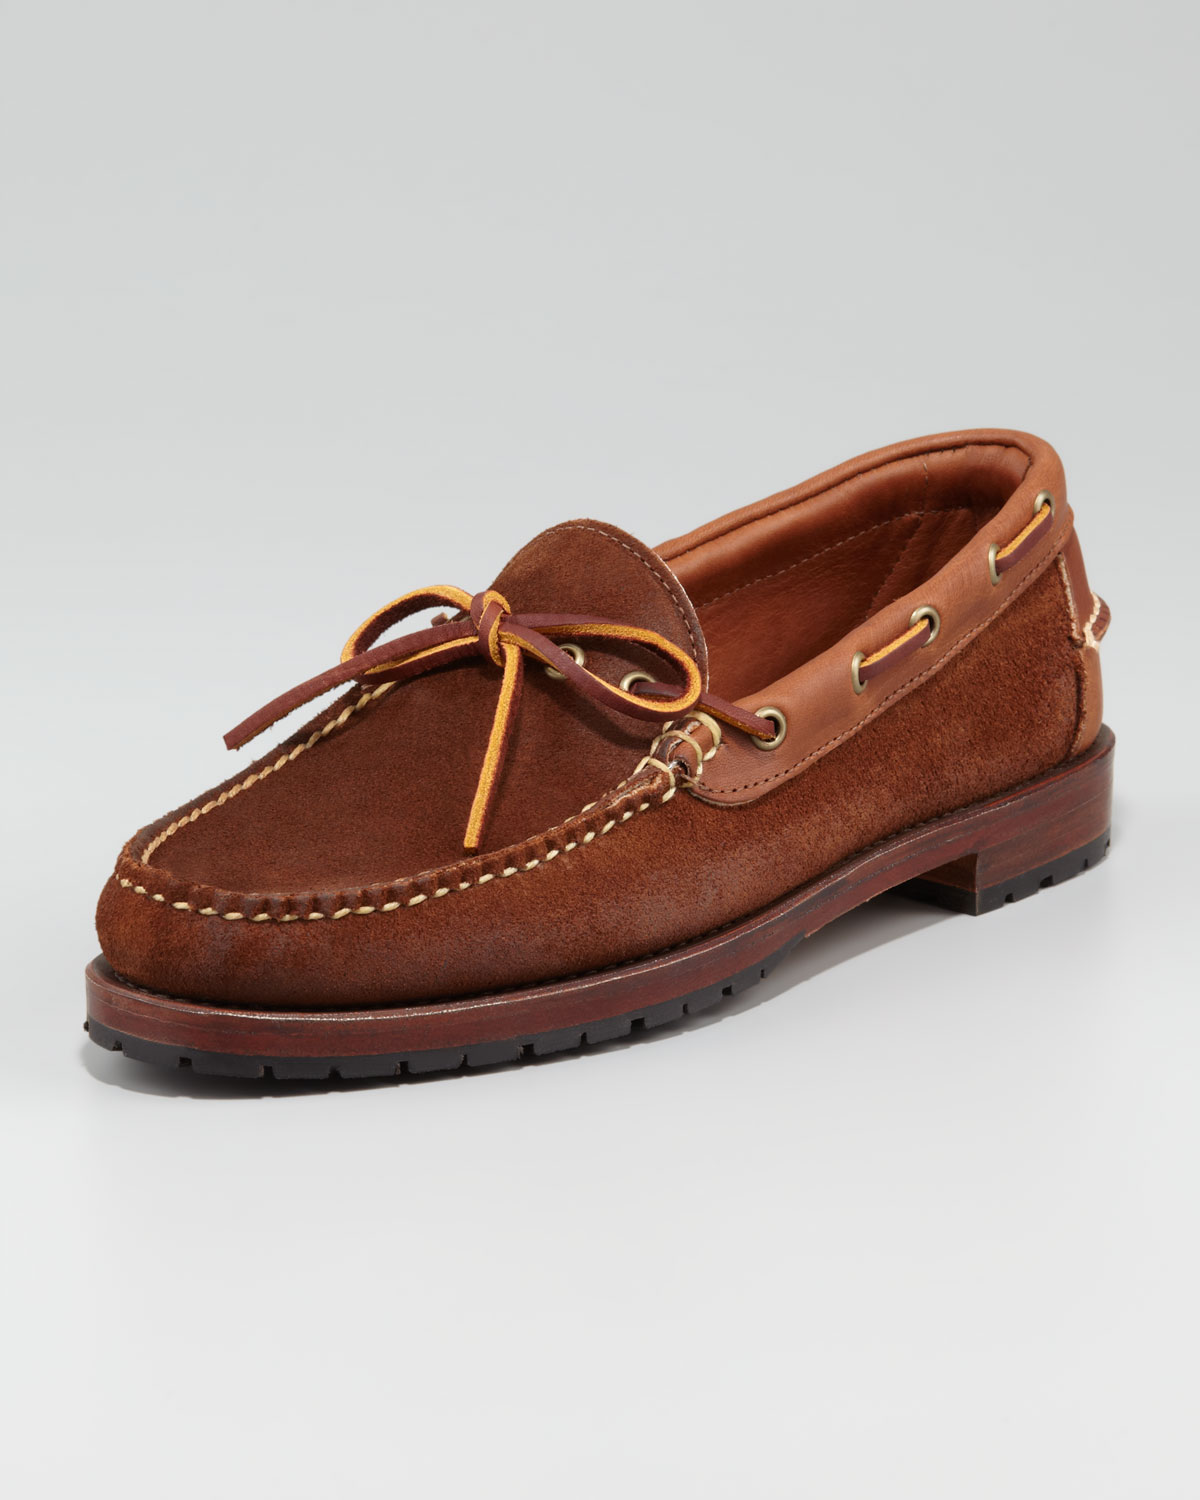 Polo Boat Shoes For Men